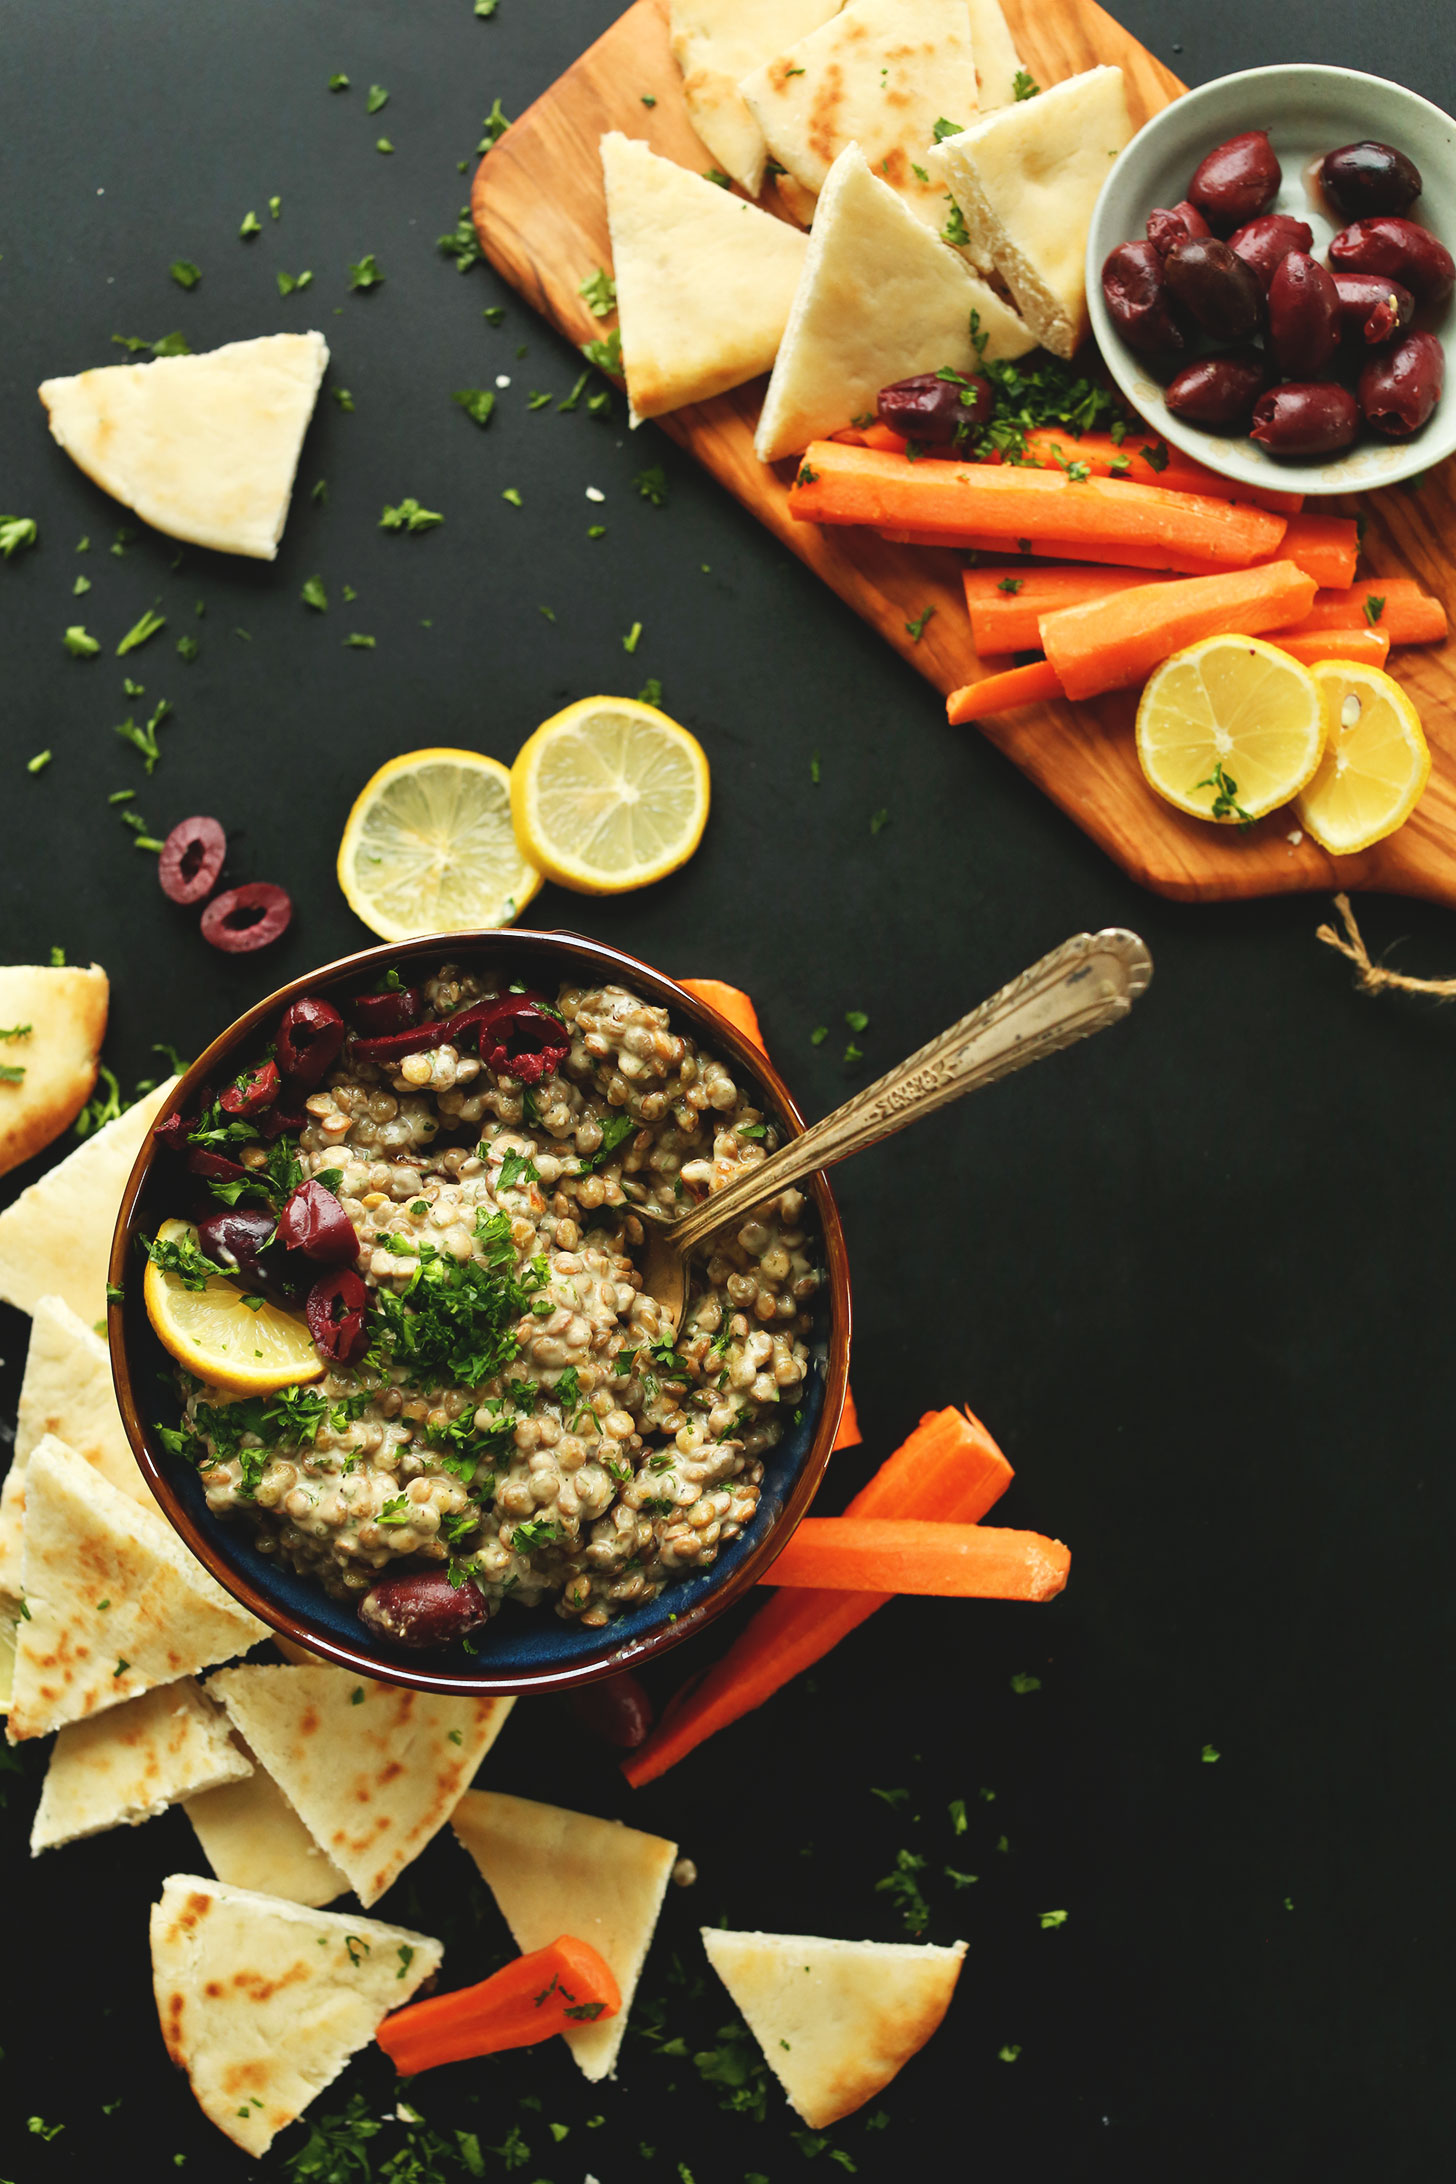 Bowl of our delicious Mediterranean Lentil Dip recipe alongside pita bread and carrot sticks for dipping